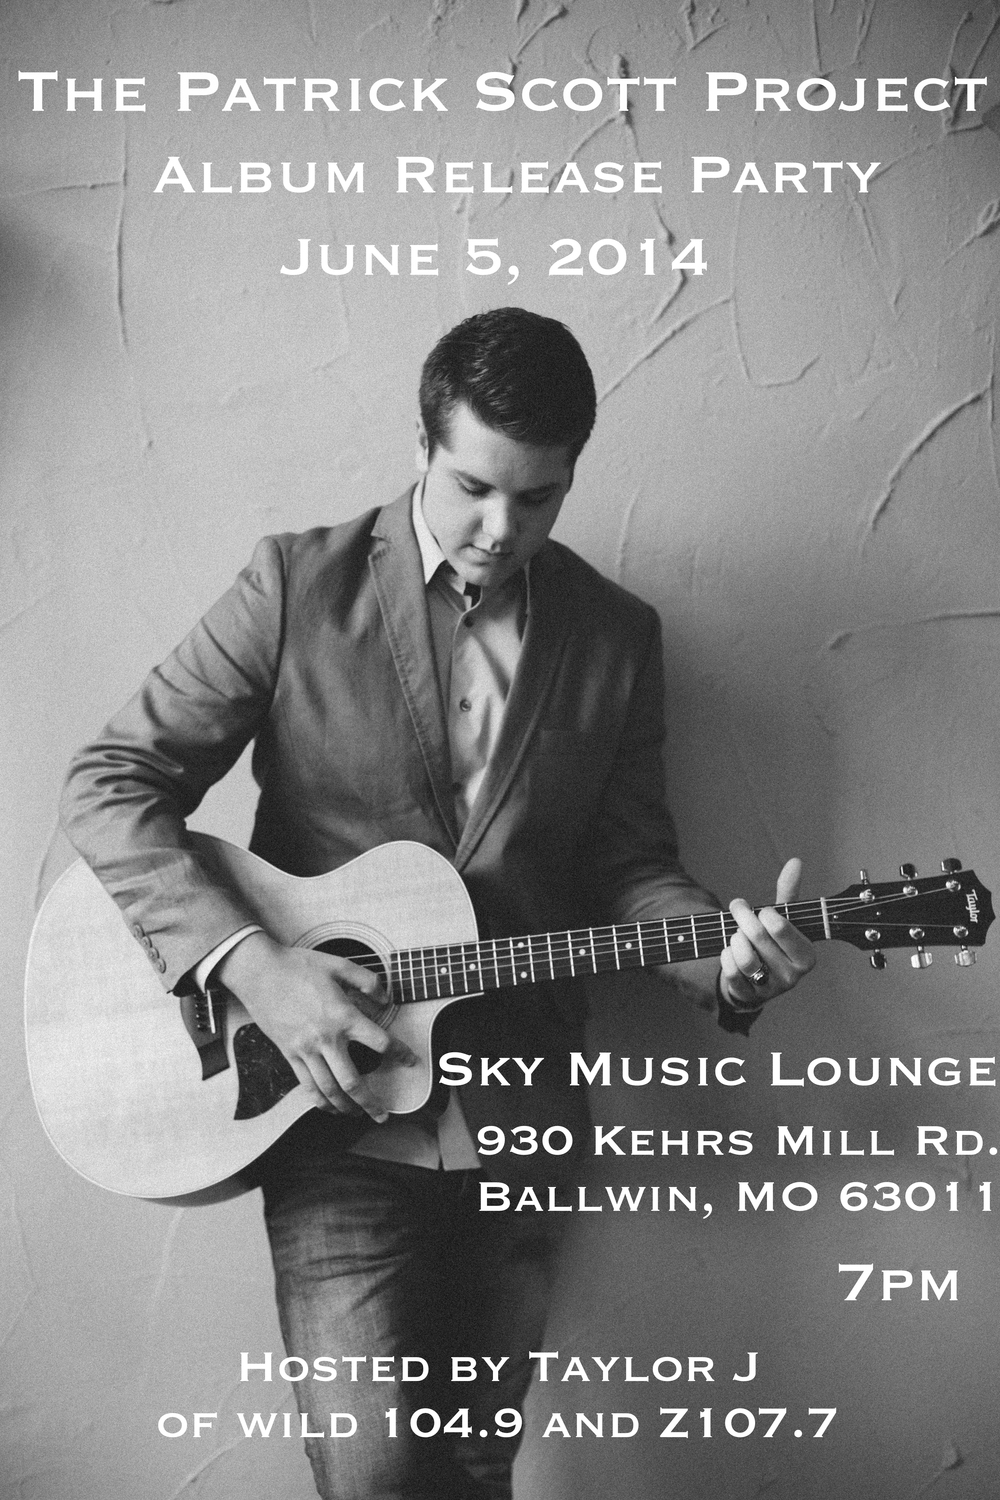 Click to see the live replay of the album release party from the  Sky Music Lounge on June 5th